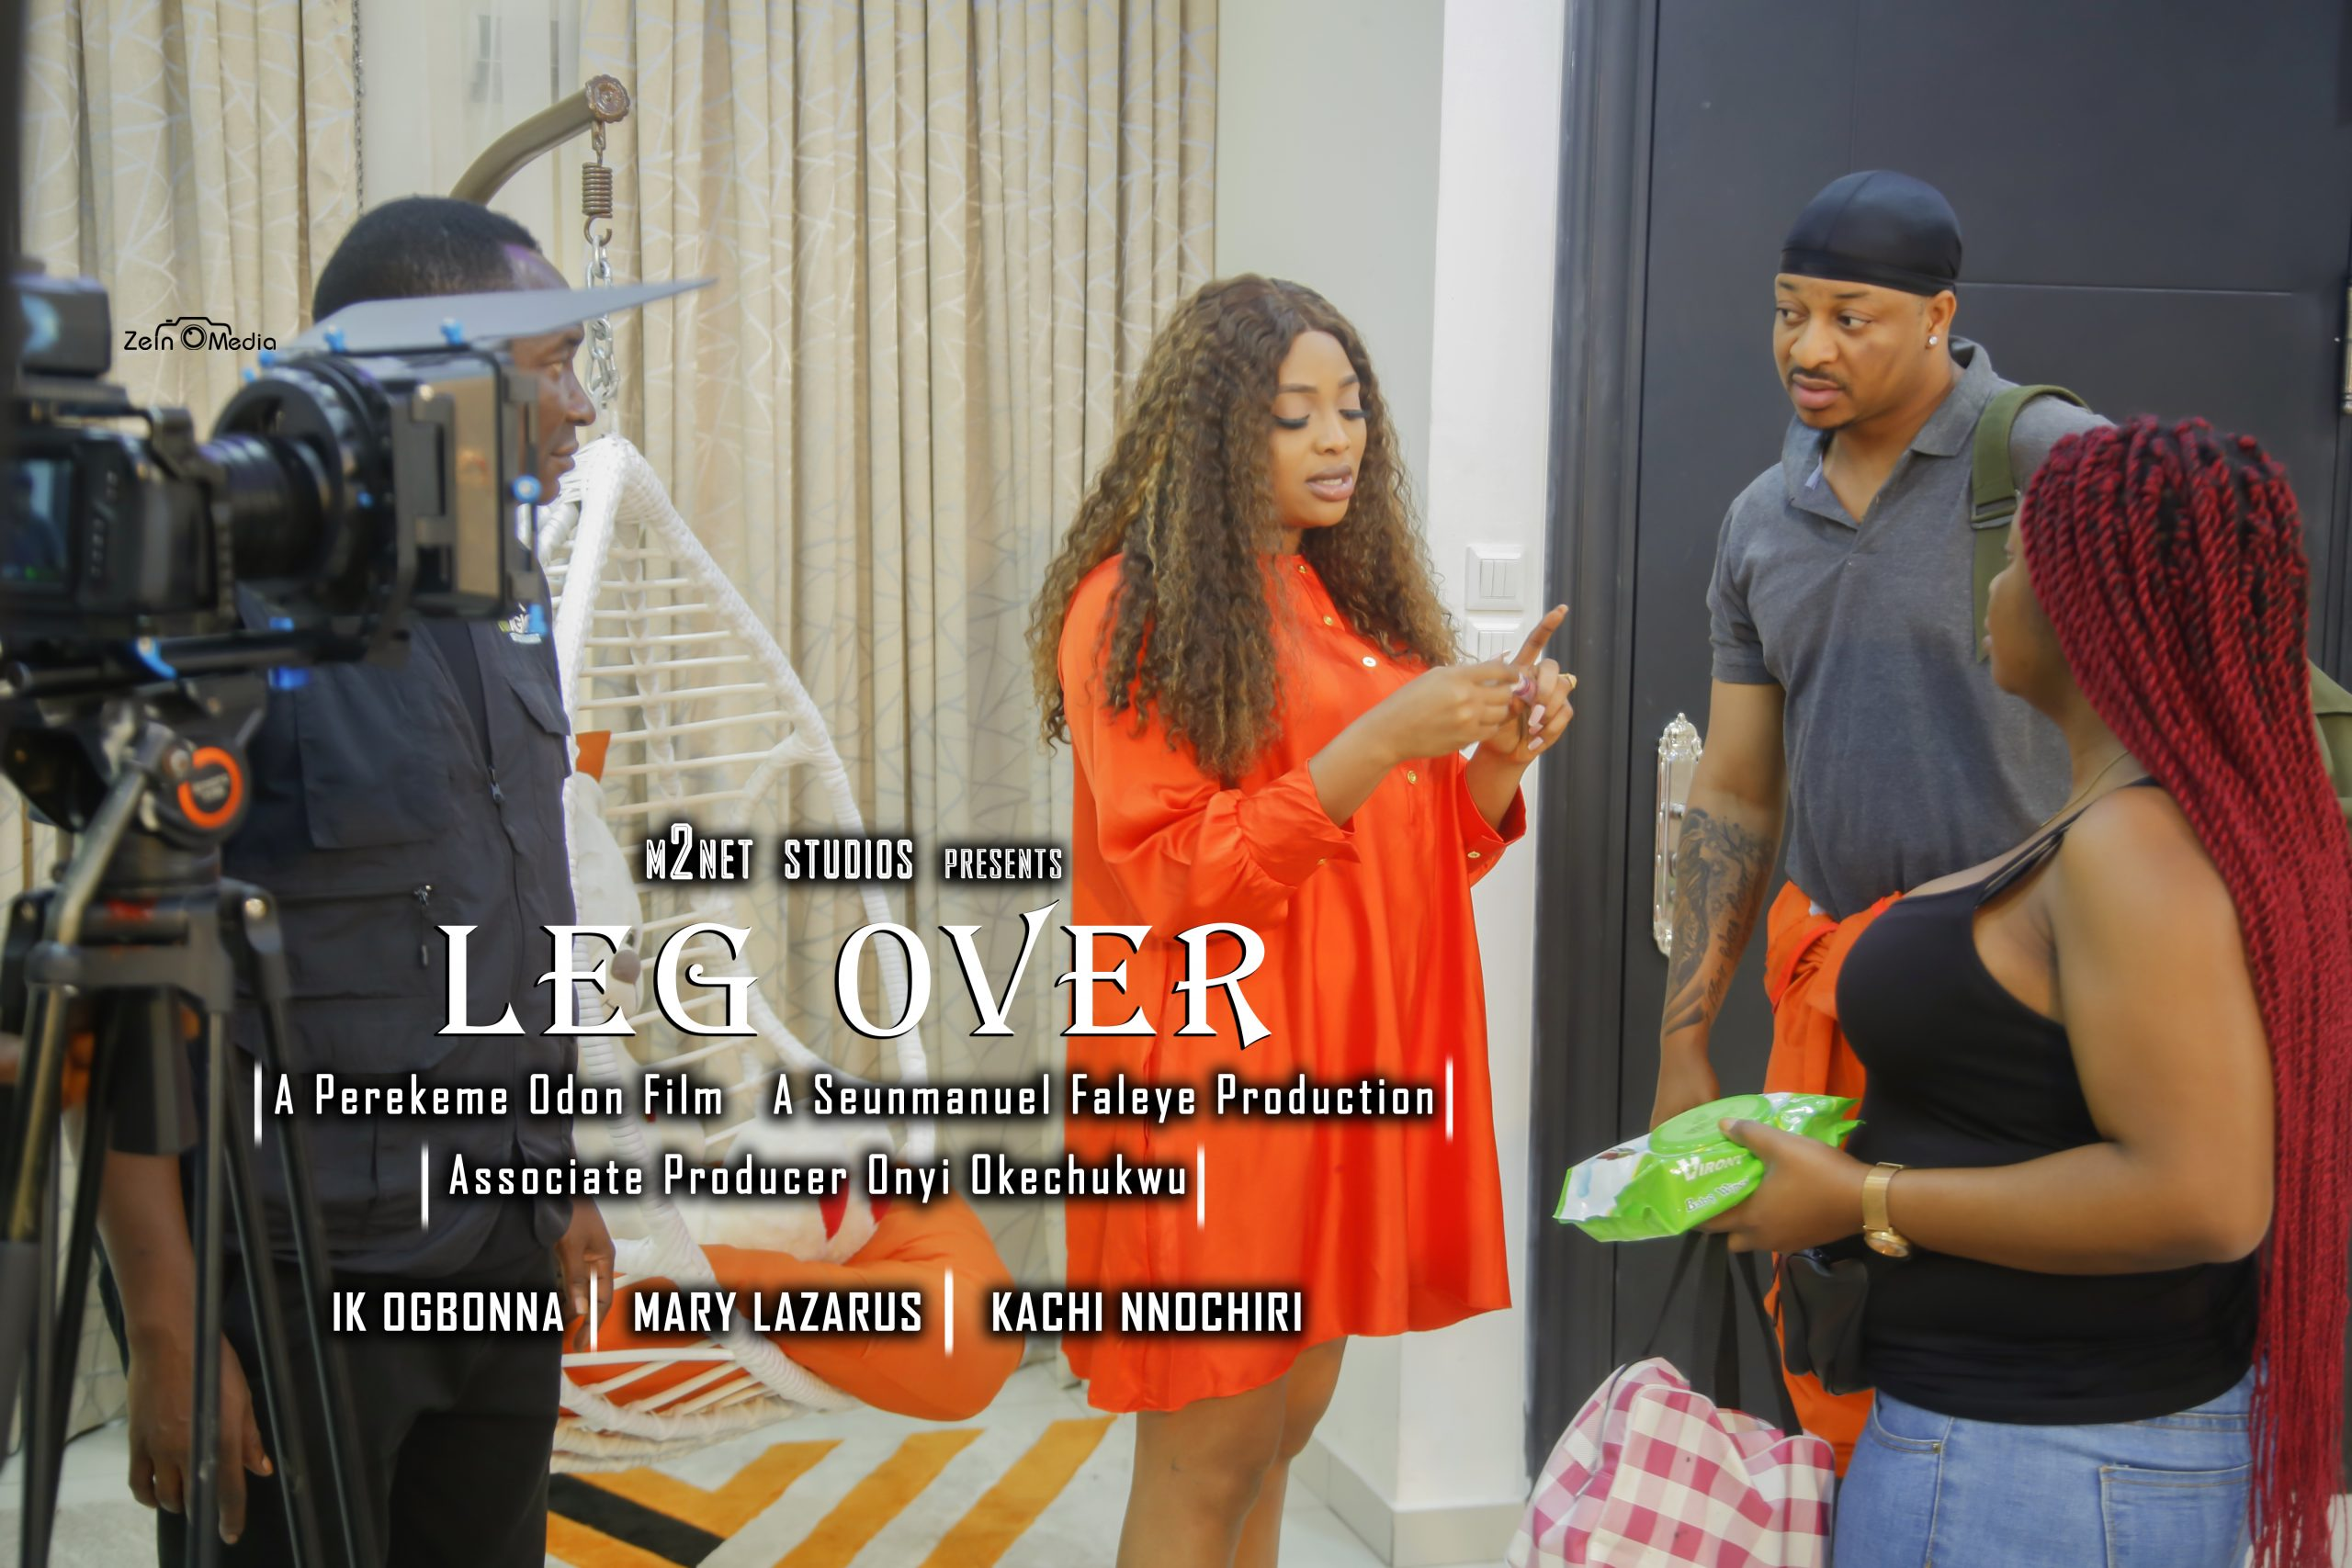 Seunmanuel Faleye Unveils Ogbonna, Lazarus, Nnochiri as Casts of romantic thriller from the stable of M2NET Studios